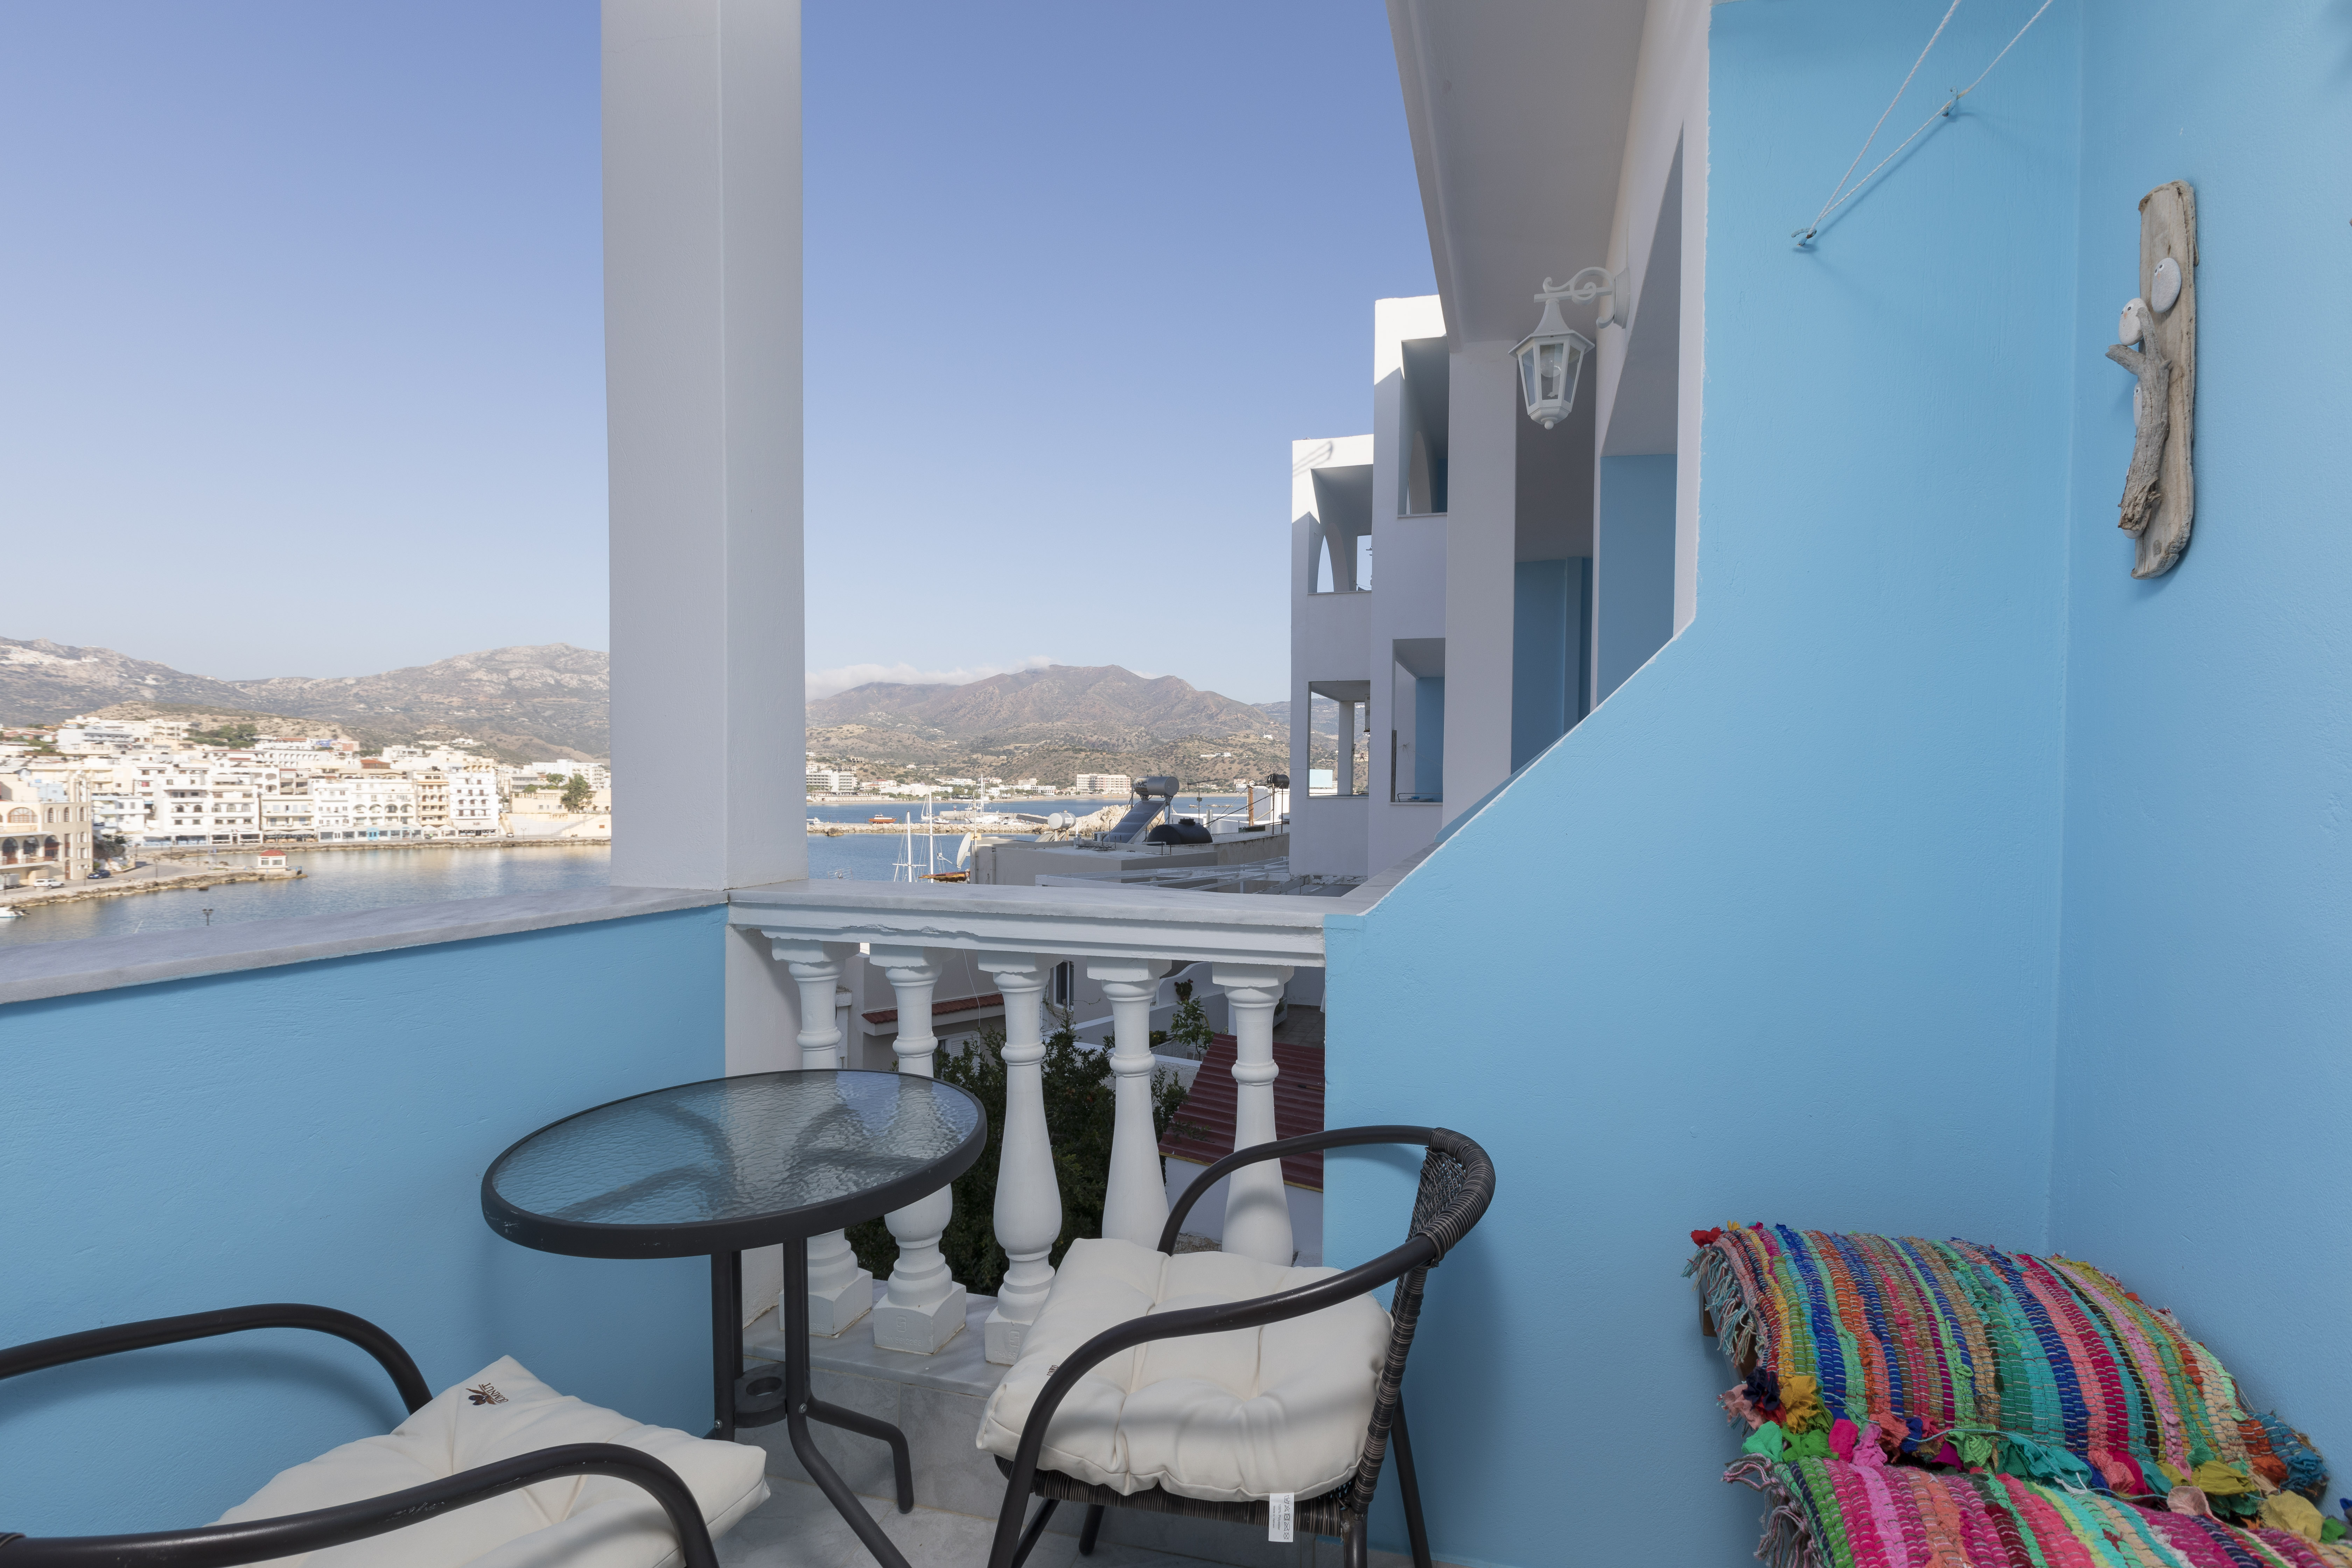 gorgona blue balcony amazing view